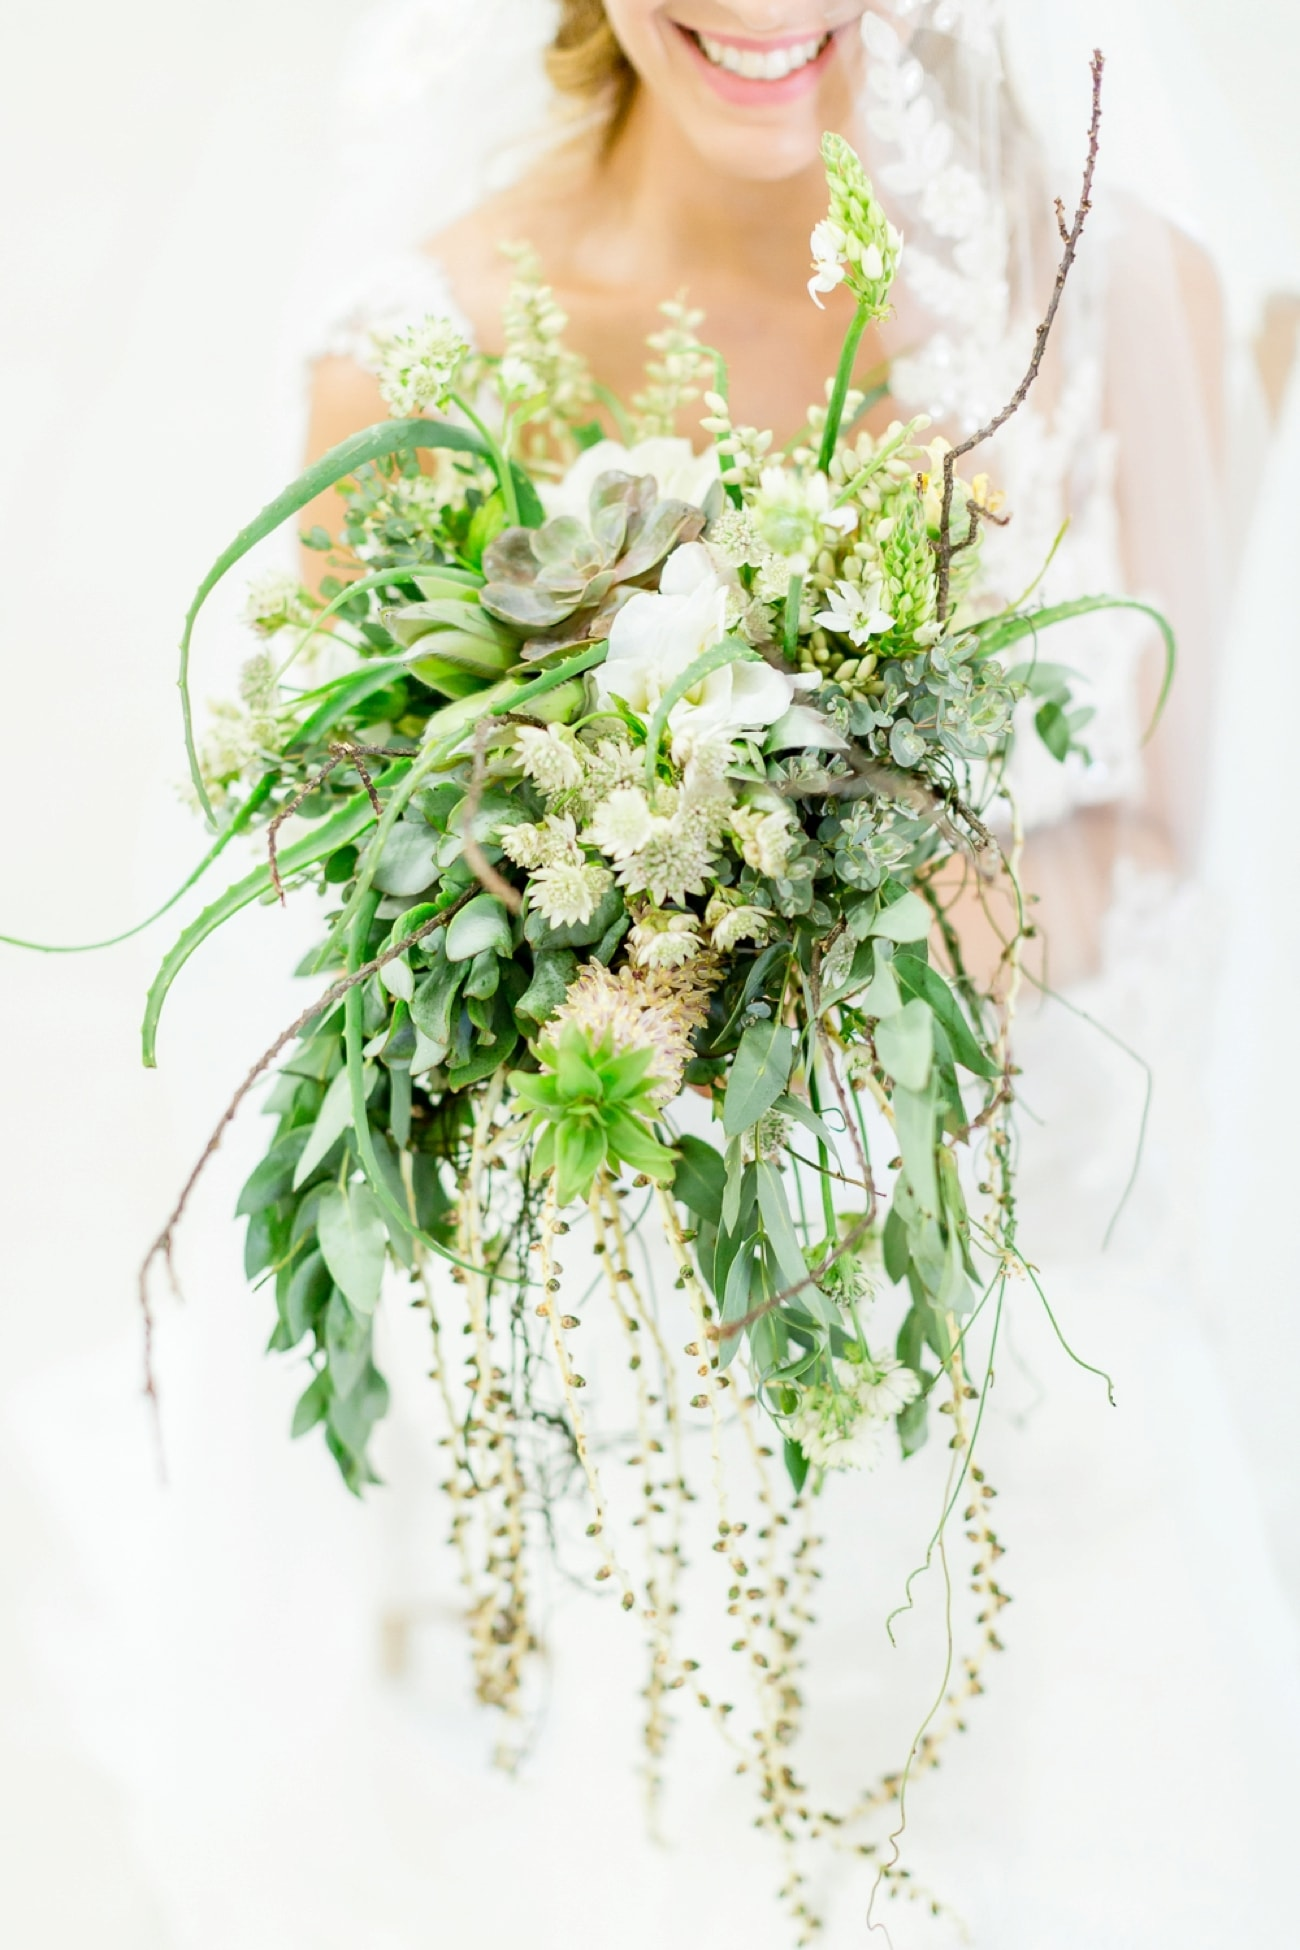 Lush Succulent & Greenery Bouquet | Credit: Grace Studios / Absolute Perfection